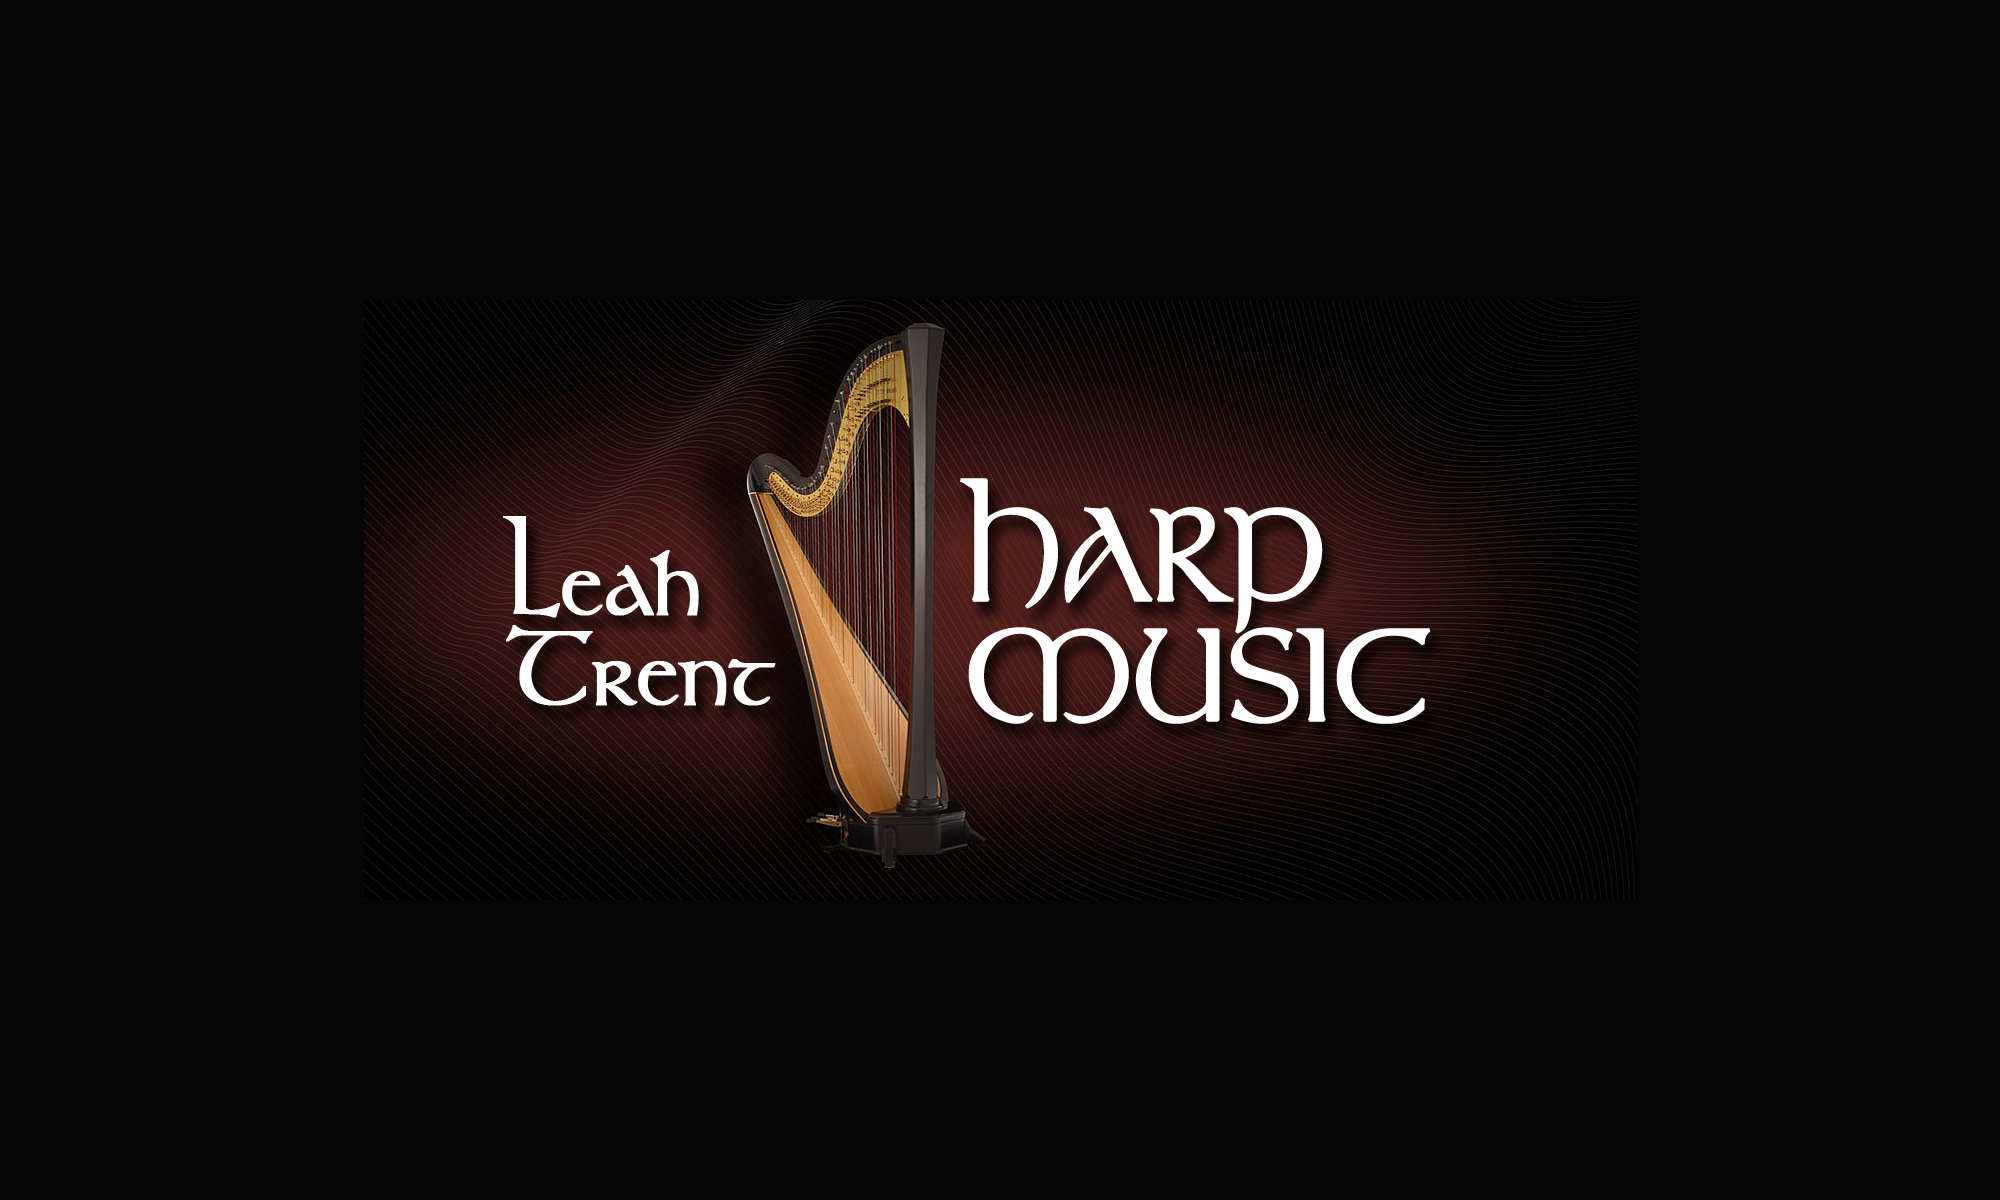 Live Harp Music by Leah Trent